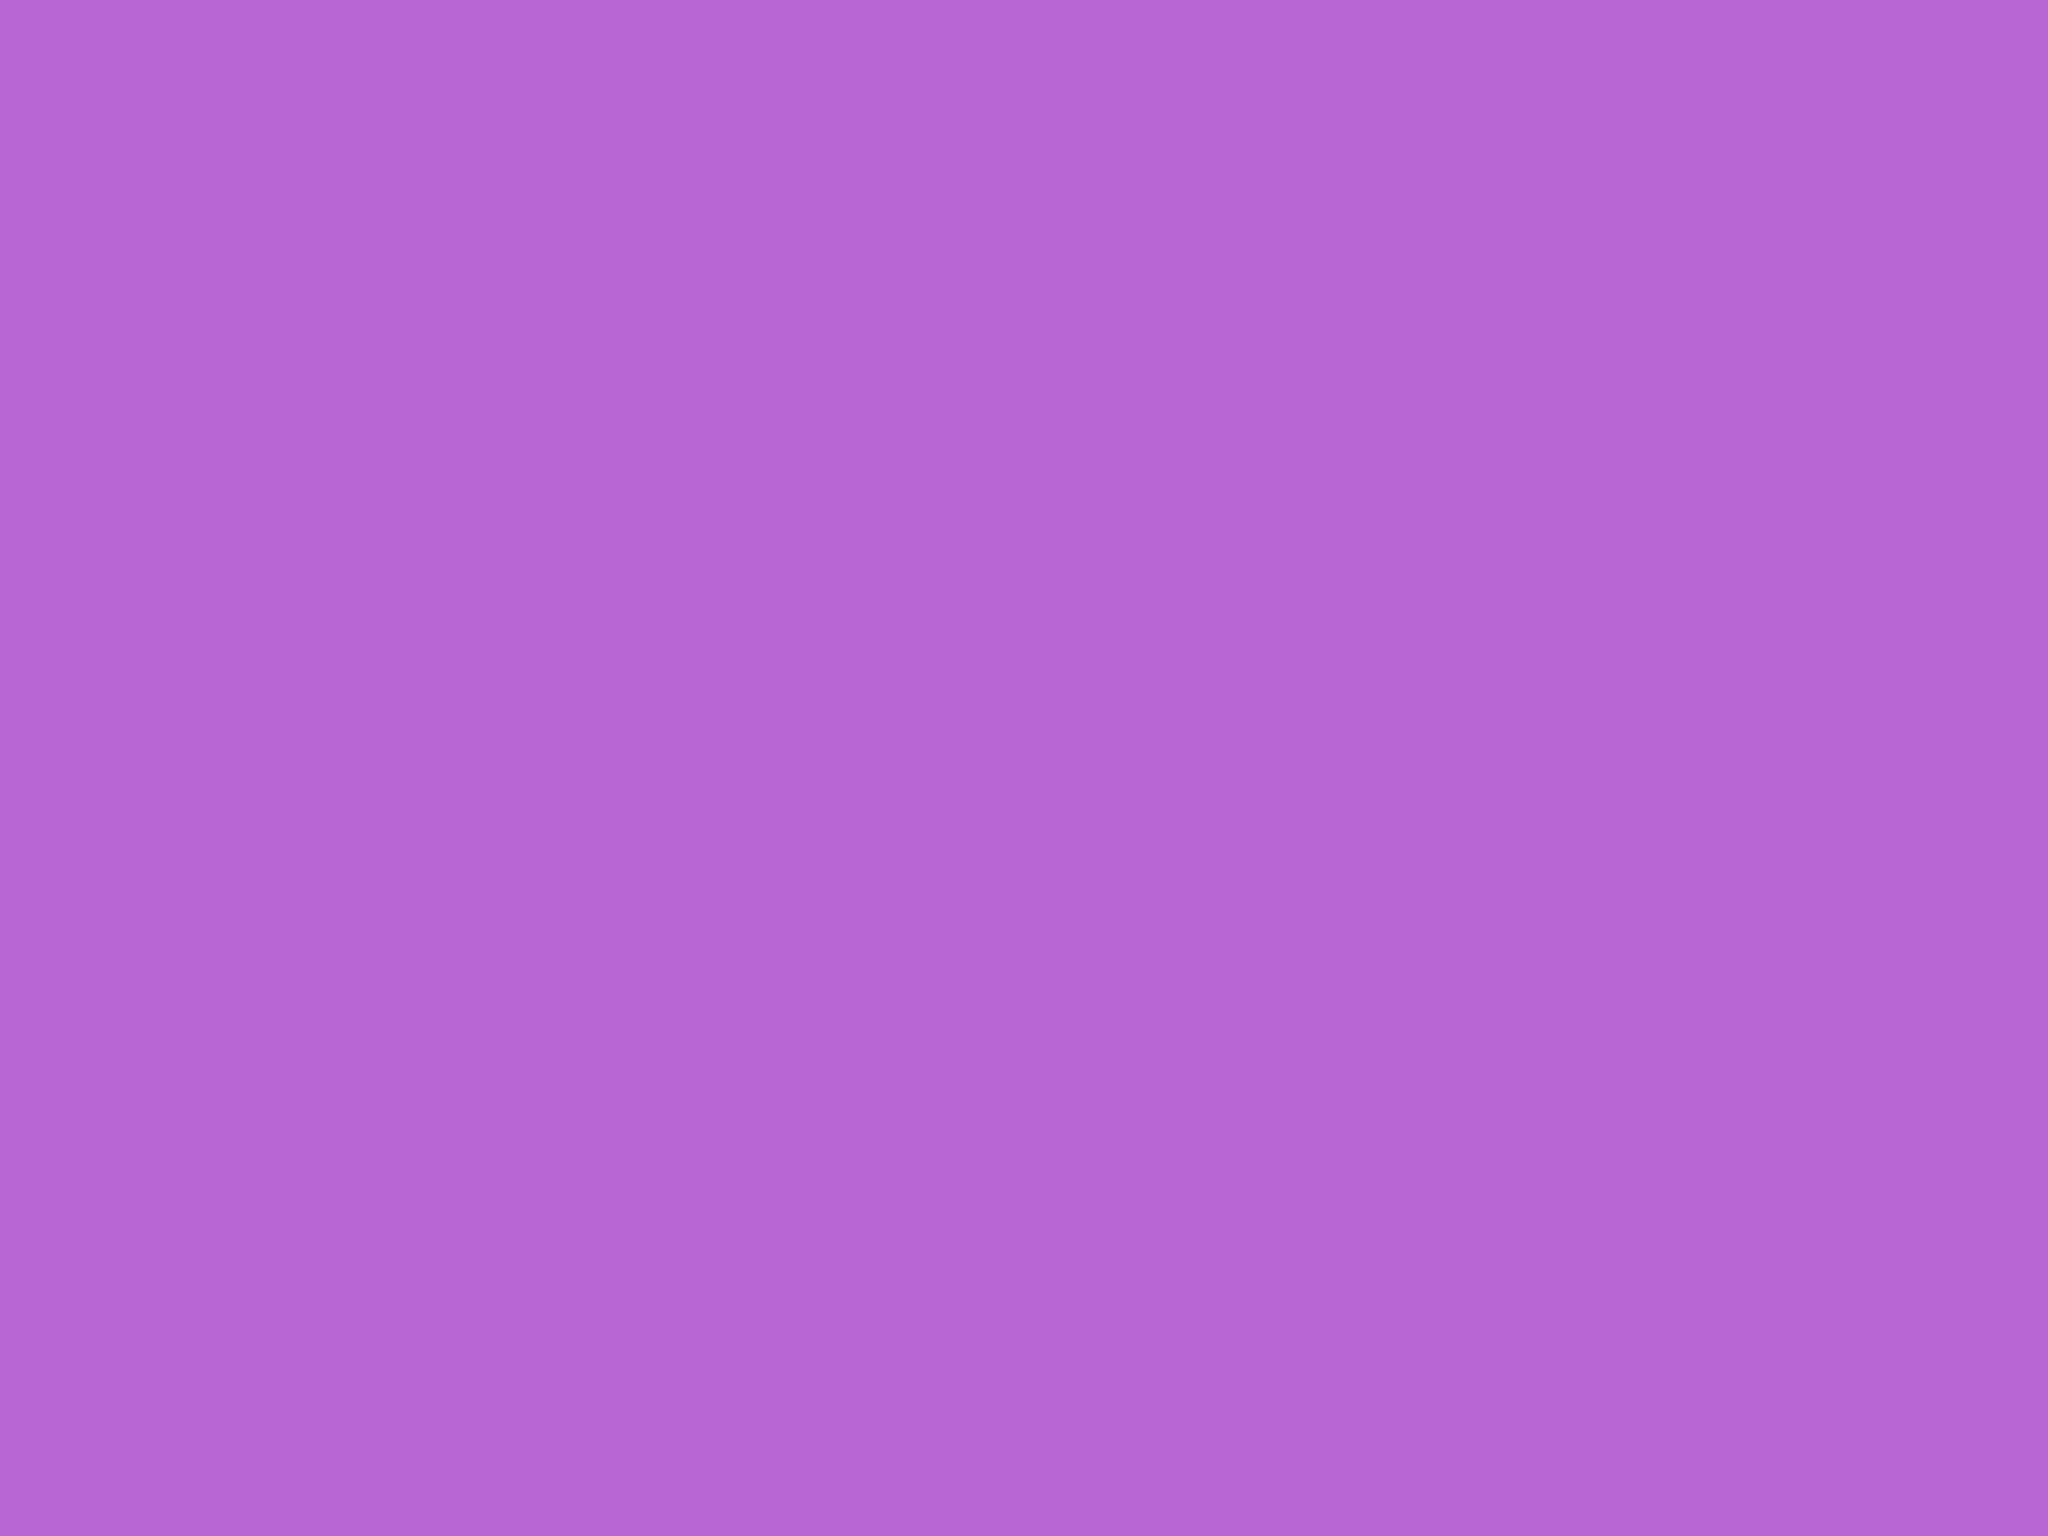 2048x1536 Rich Lilac Solid Color Background